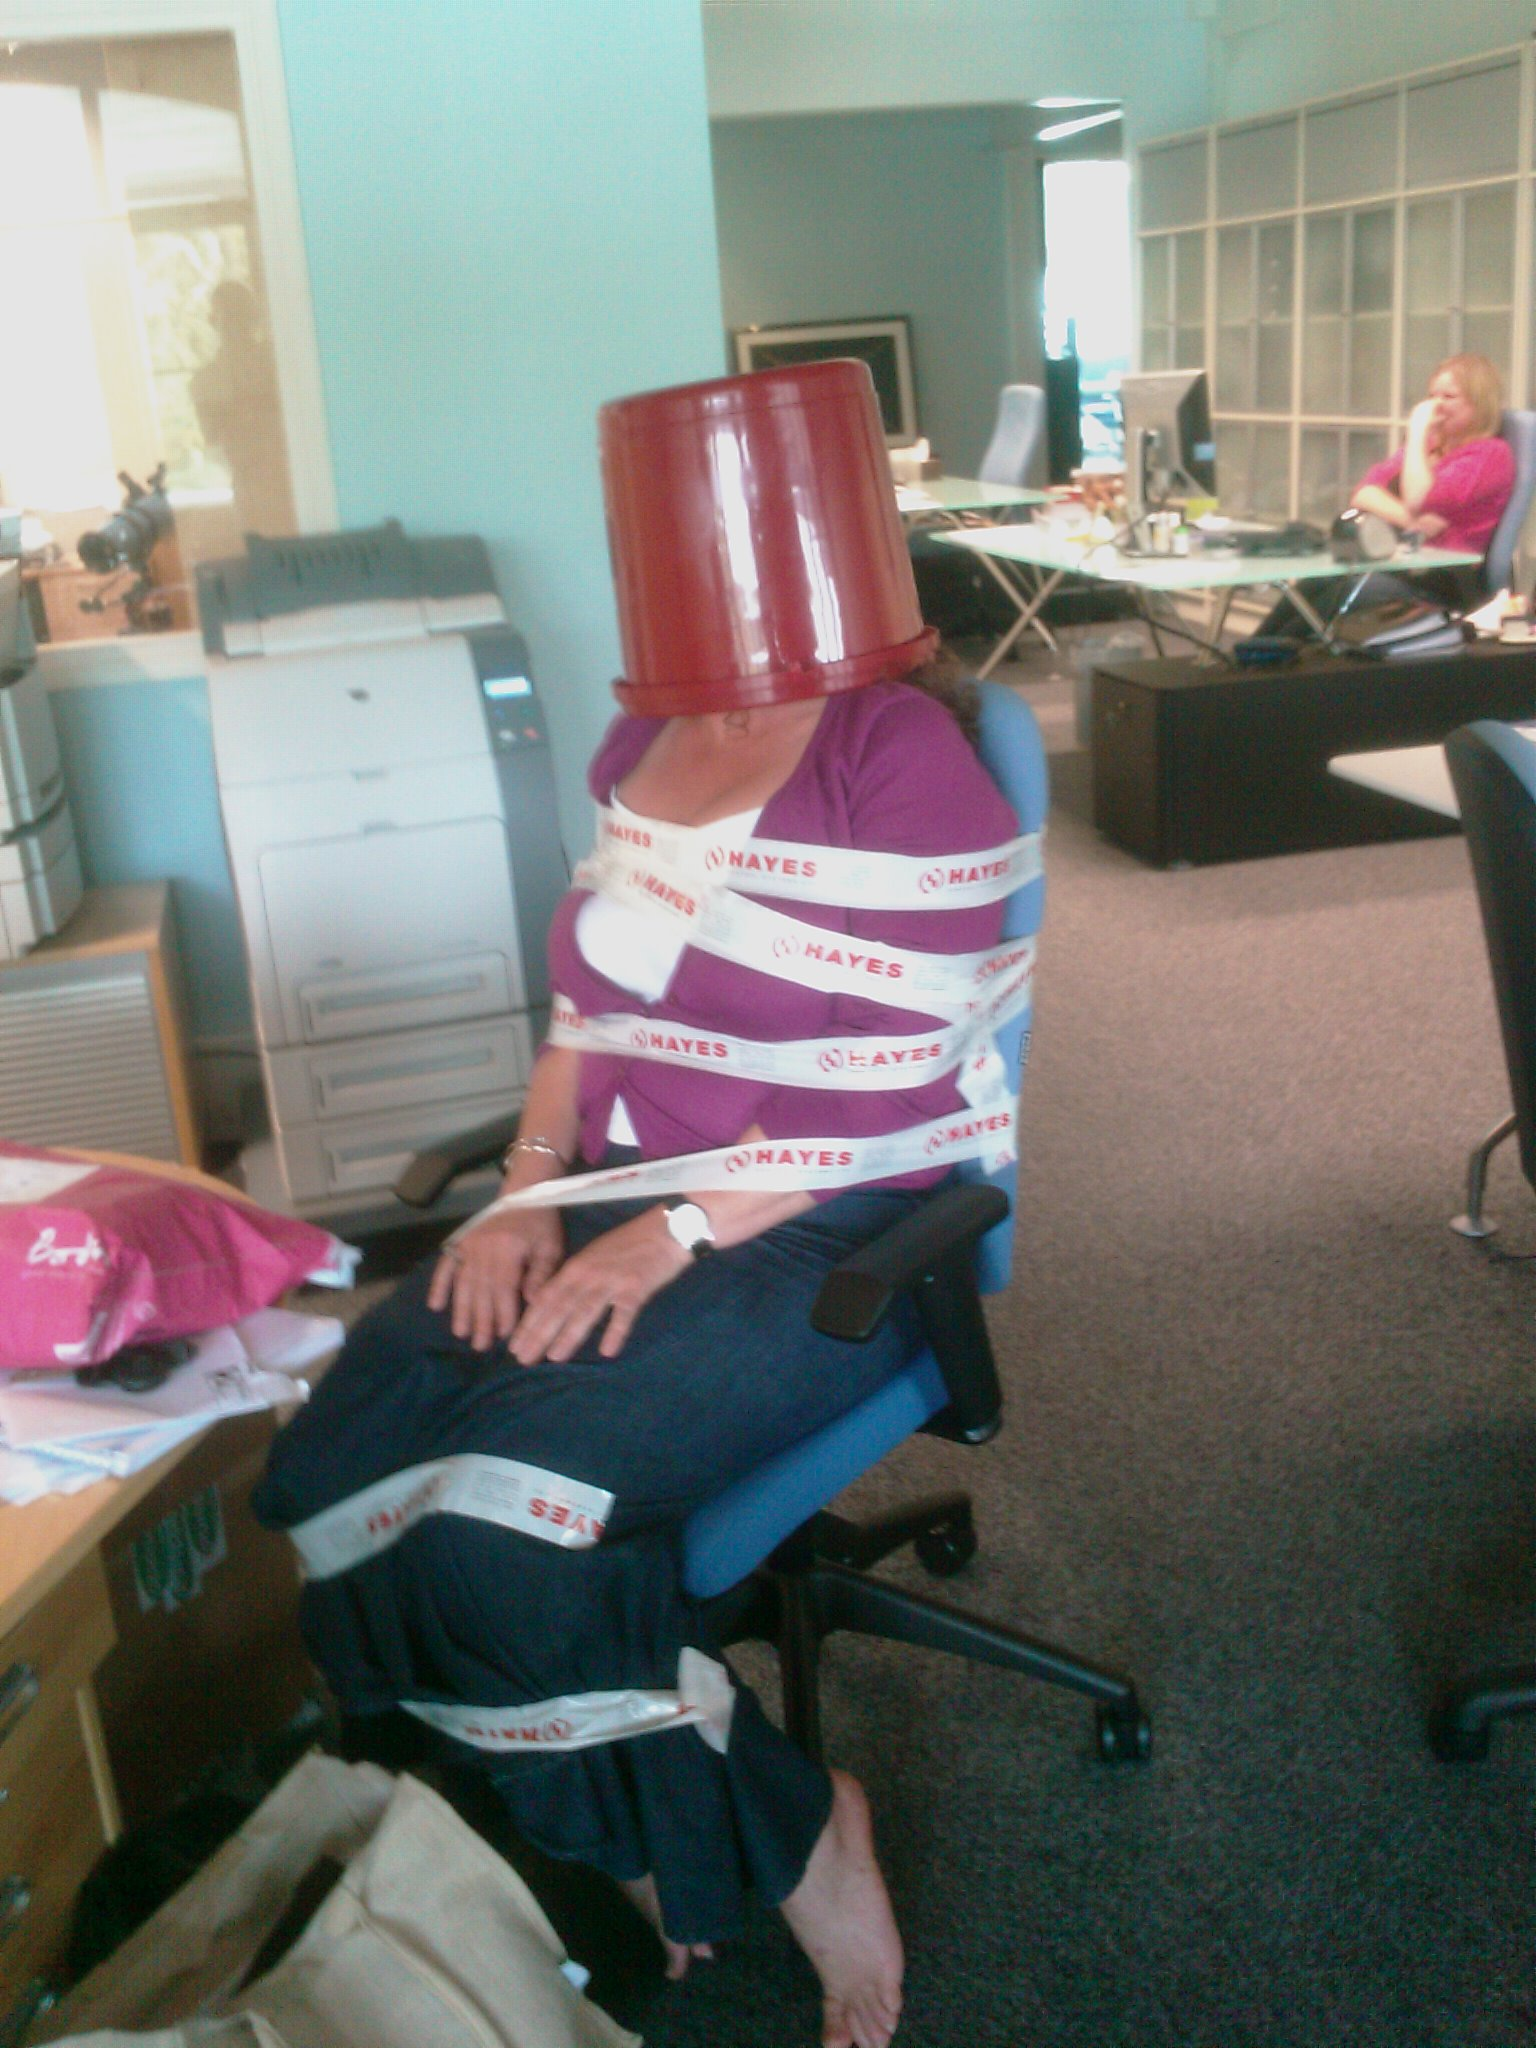 Another hard day in the office